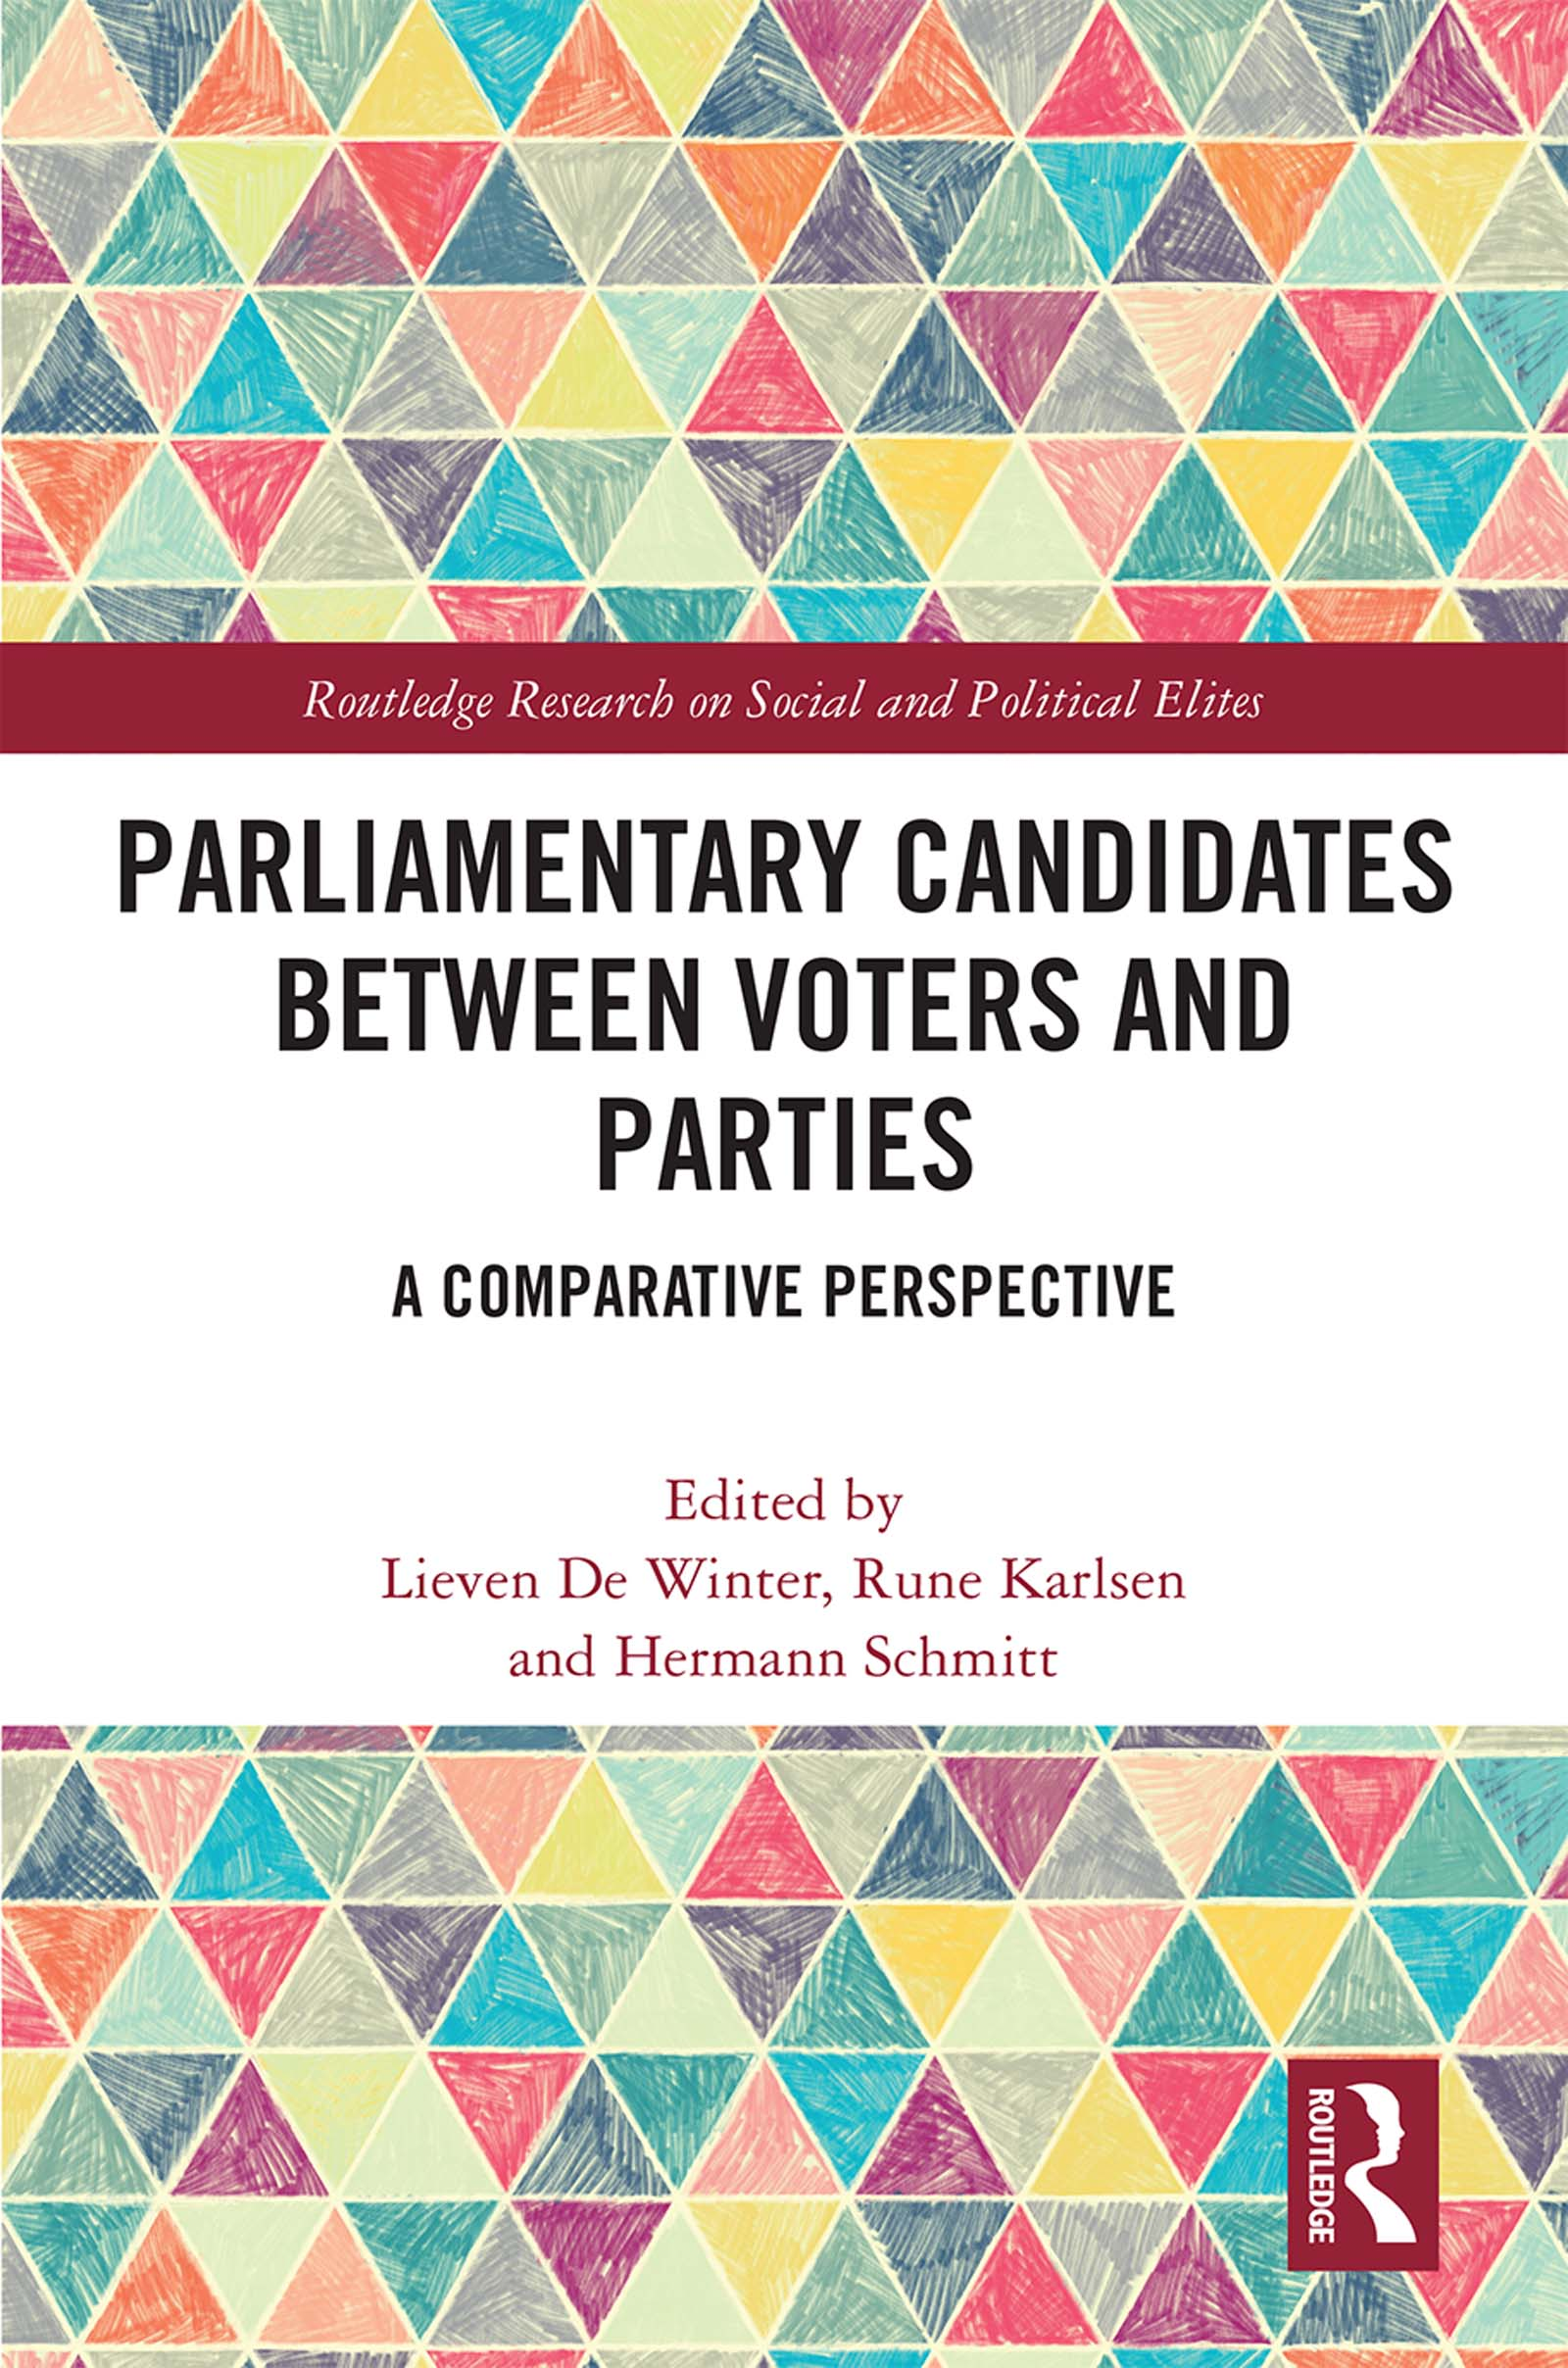 Parliamentary Candidates Between Voters and Parties